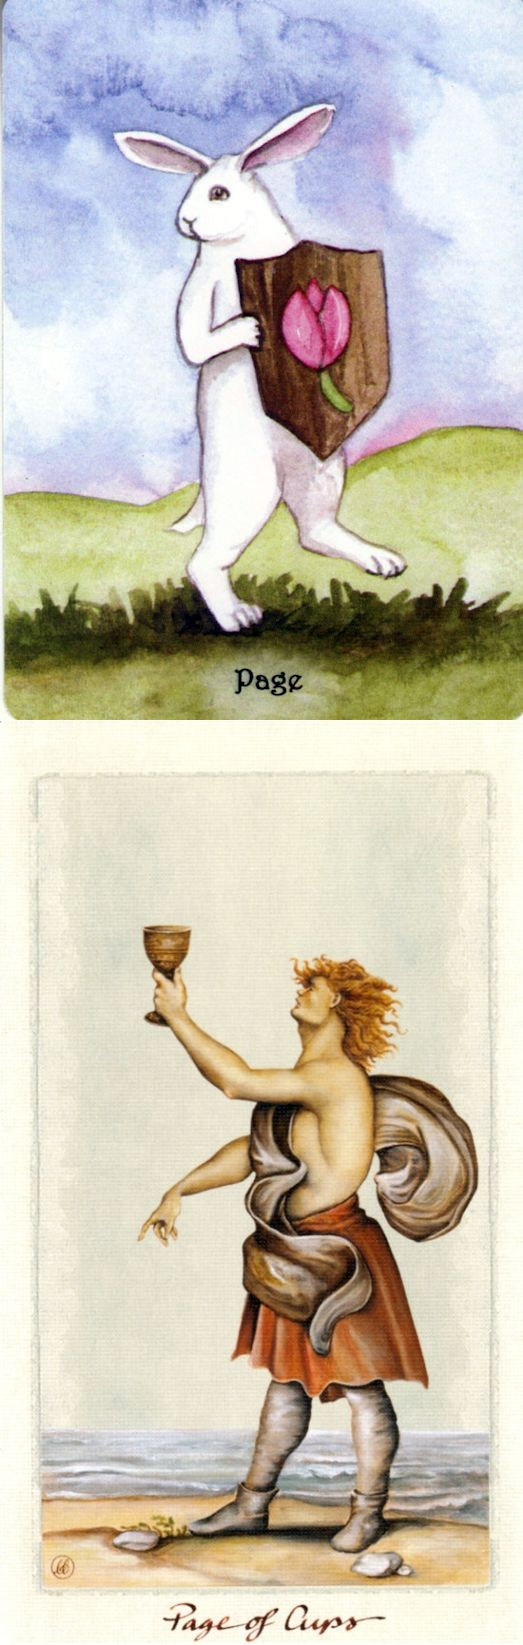 Page of Cups: appy surprise and immaturity (reverse). Rabbit Tarot deck and Pagan Otherworlds Tarot deck: tarot psychic, tarot prediction and tarot reading. New fortune telling and psychic readings free. #pods #pentagram #android